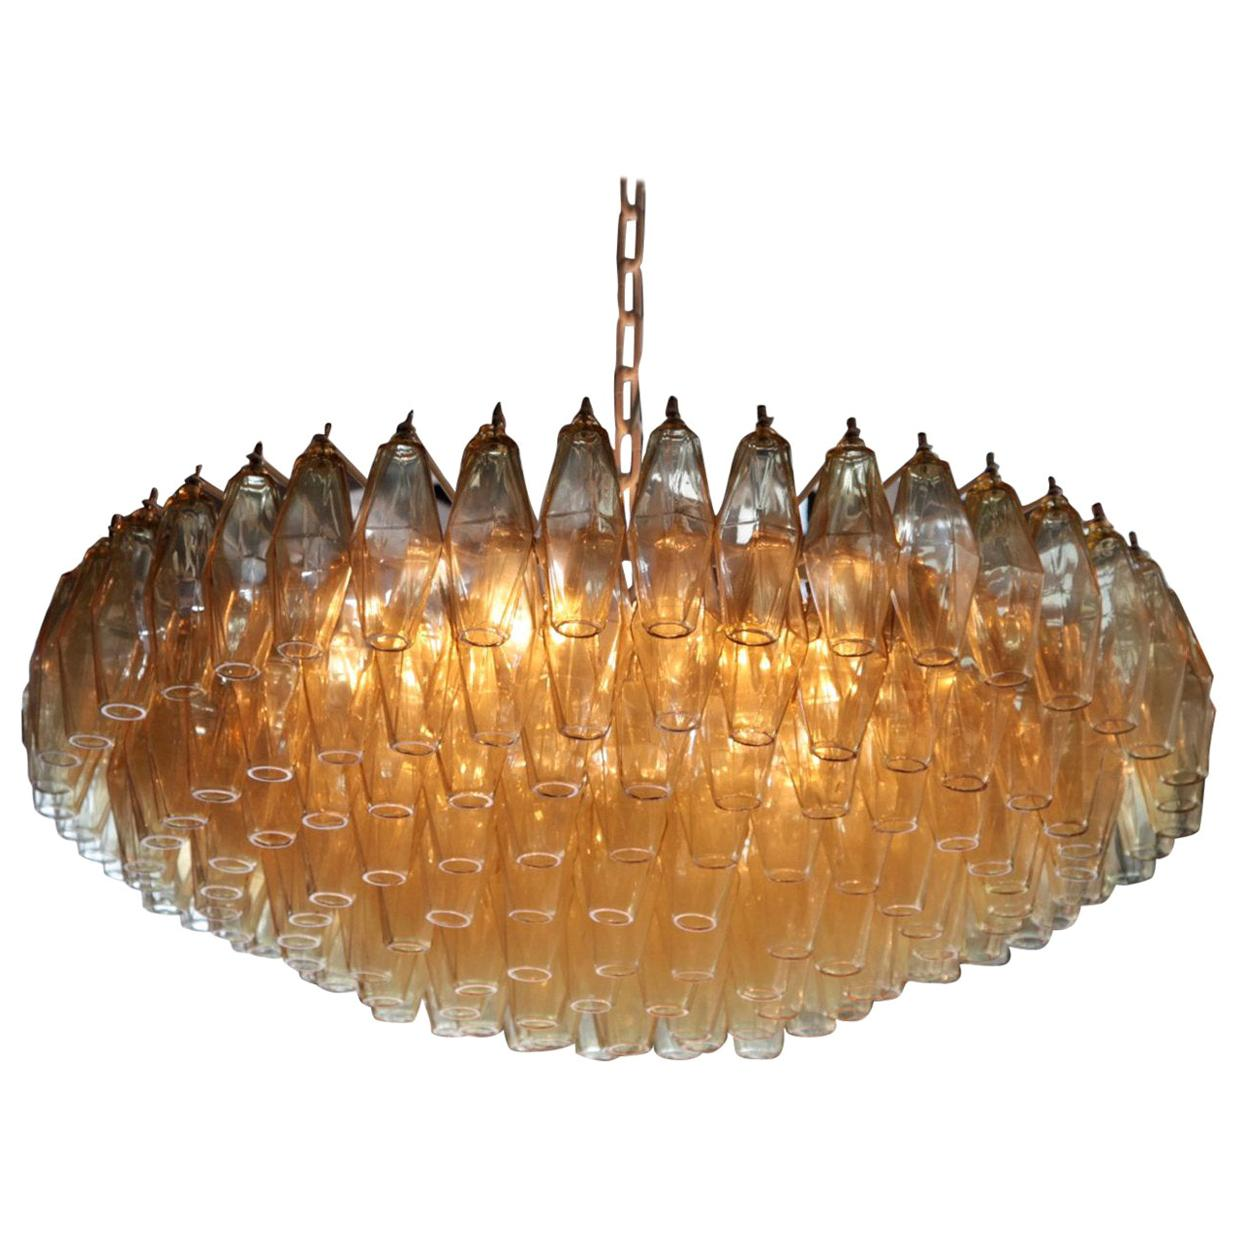 Very Huge Amber Polyhedral Murano Glass Chandelier